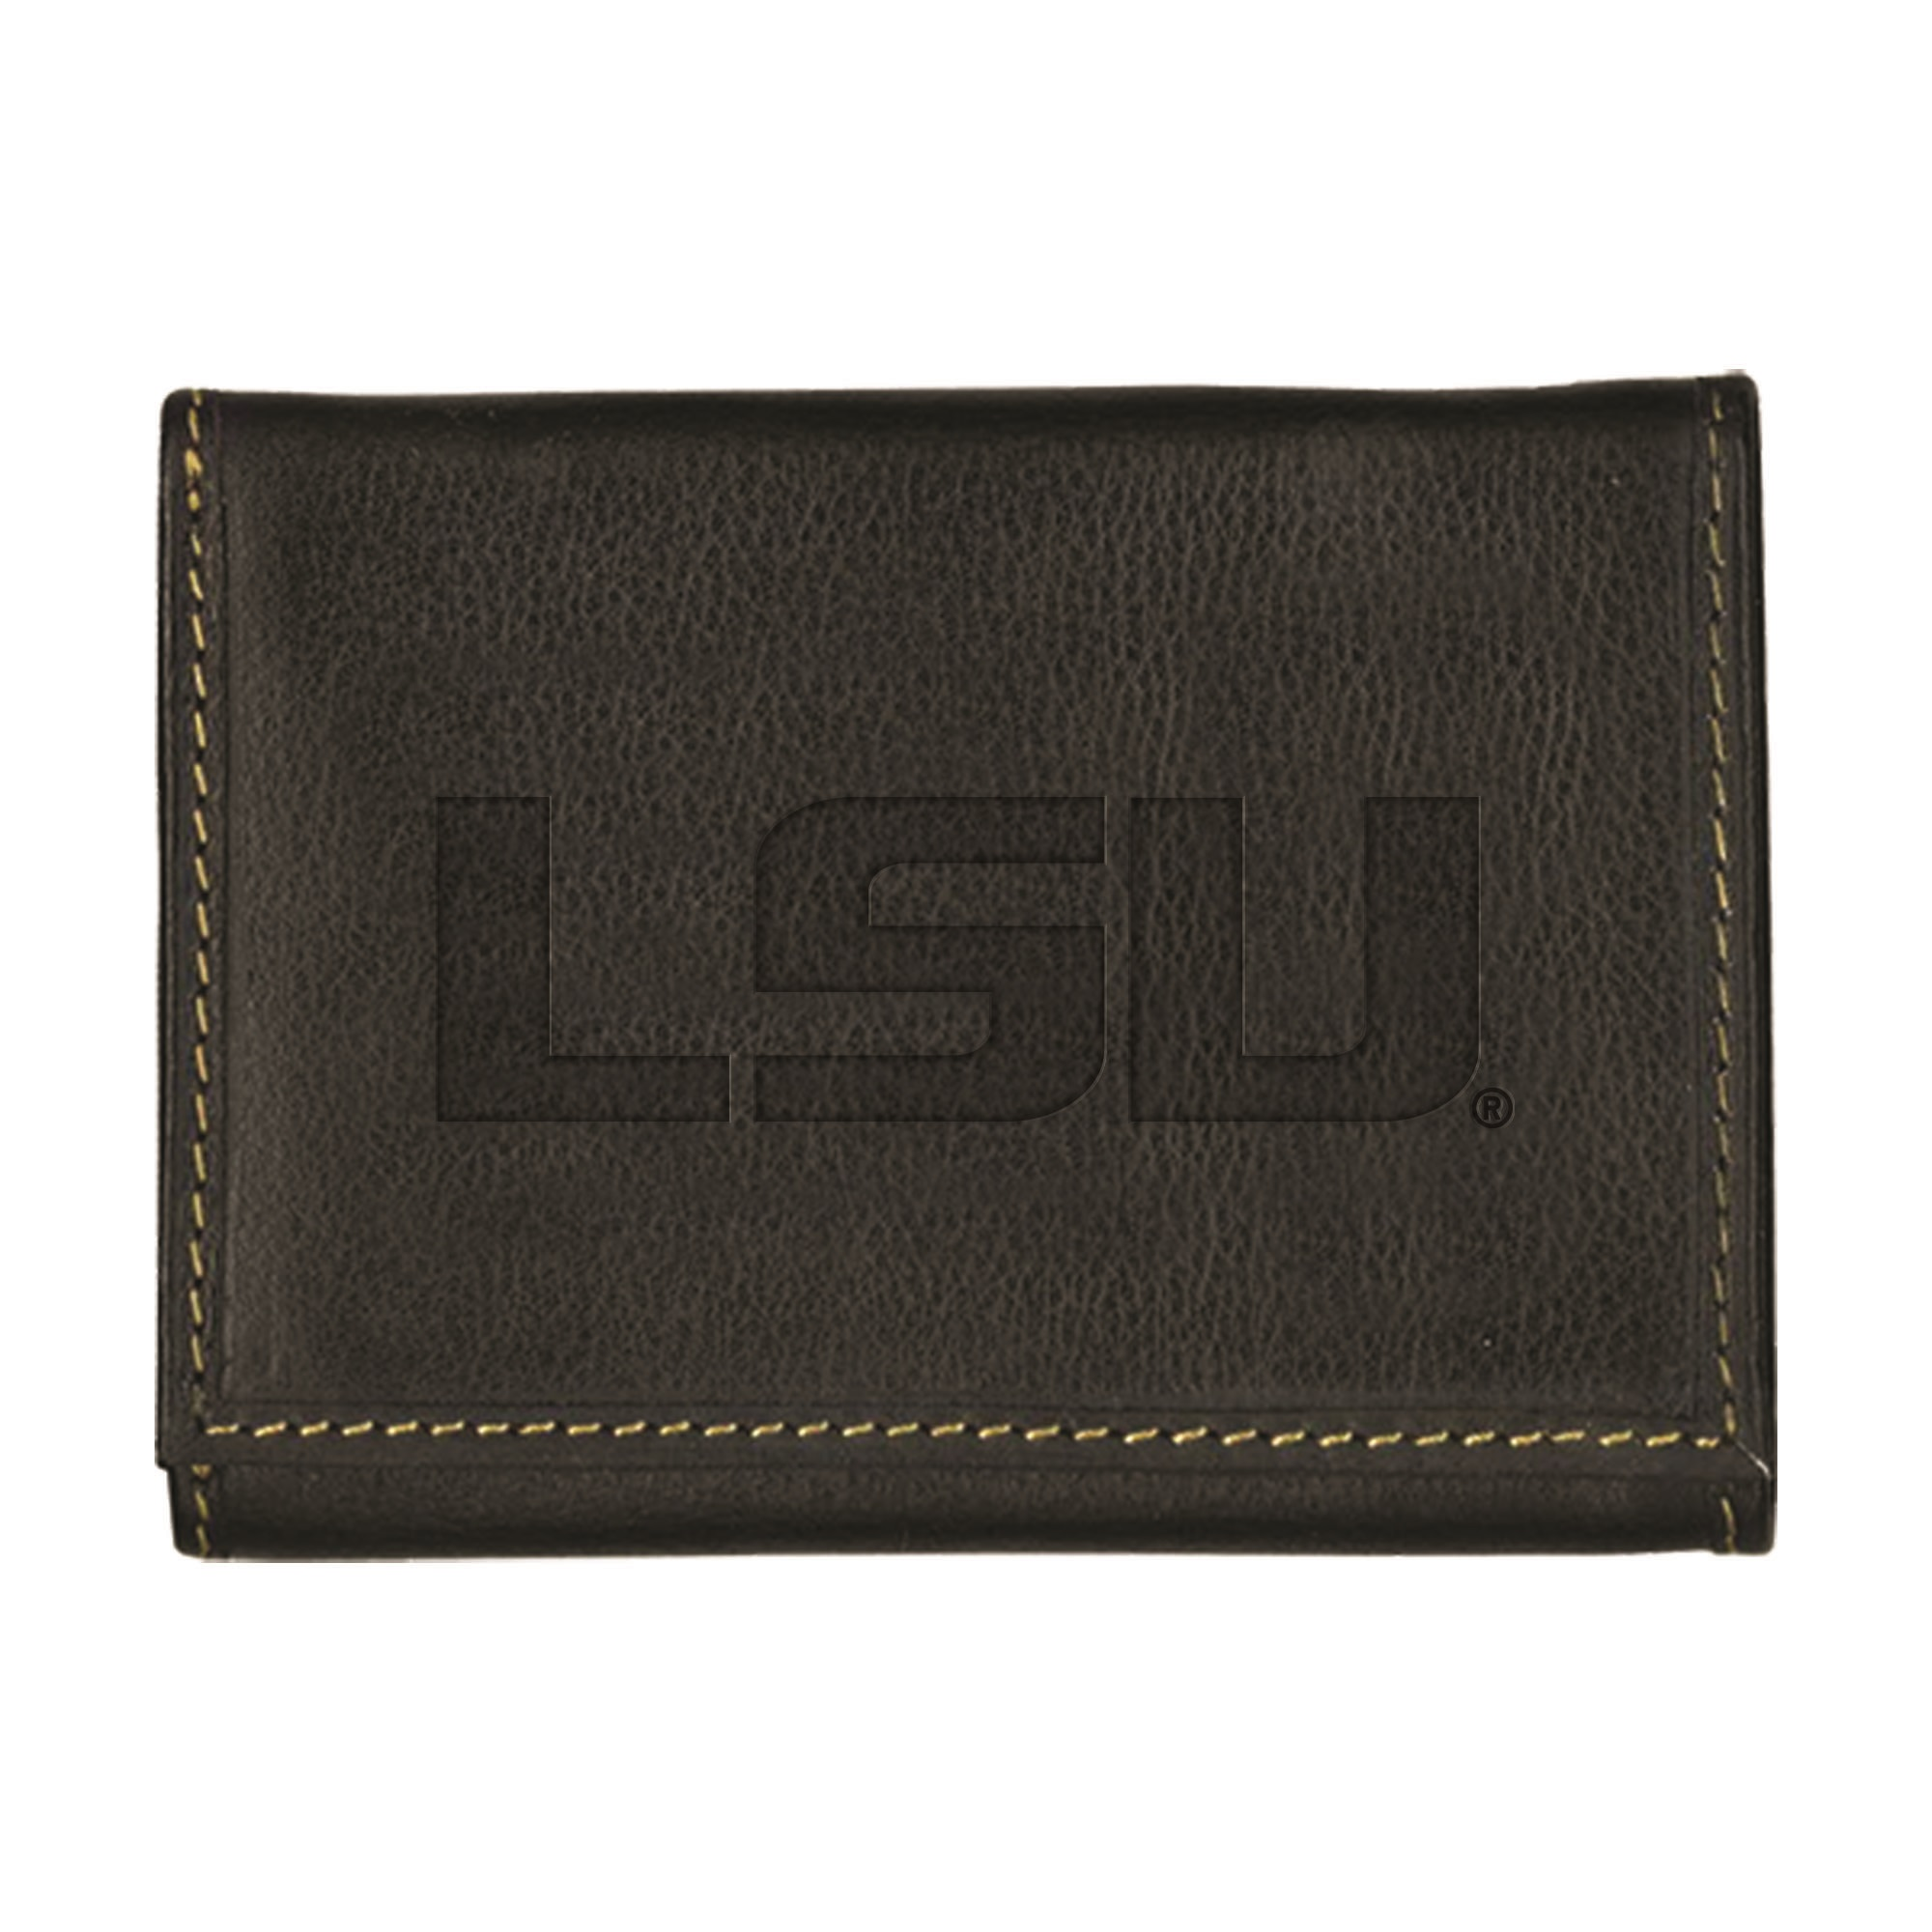 Louisiana State University Contrast Stitch Trifold Leather Wallet